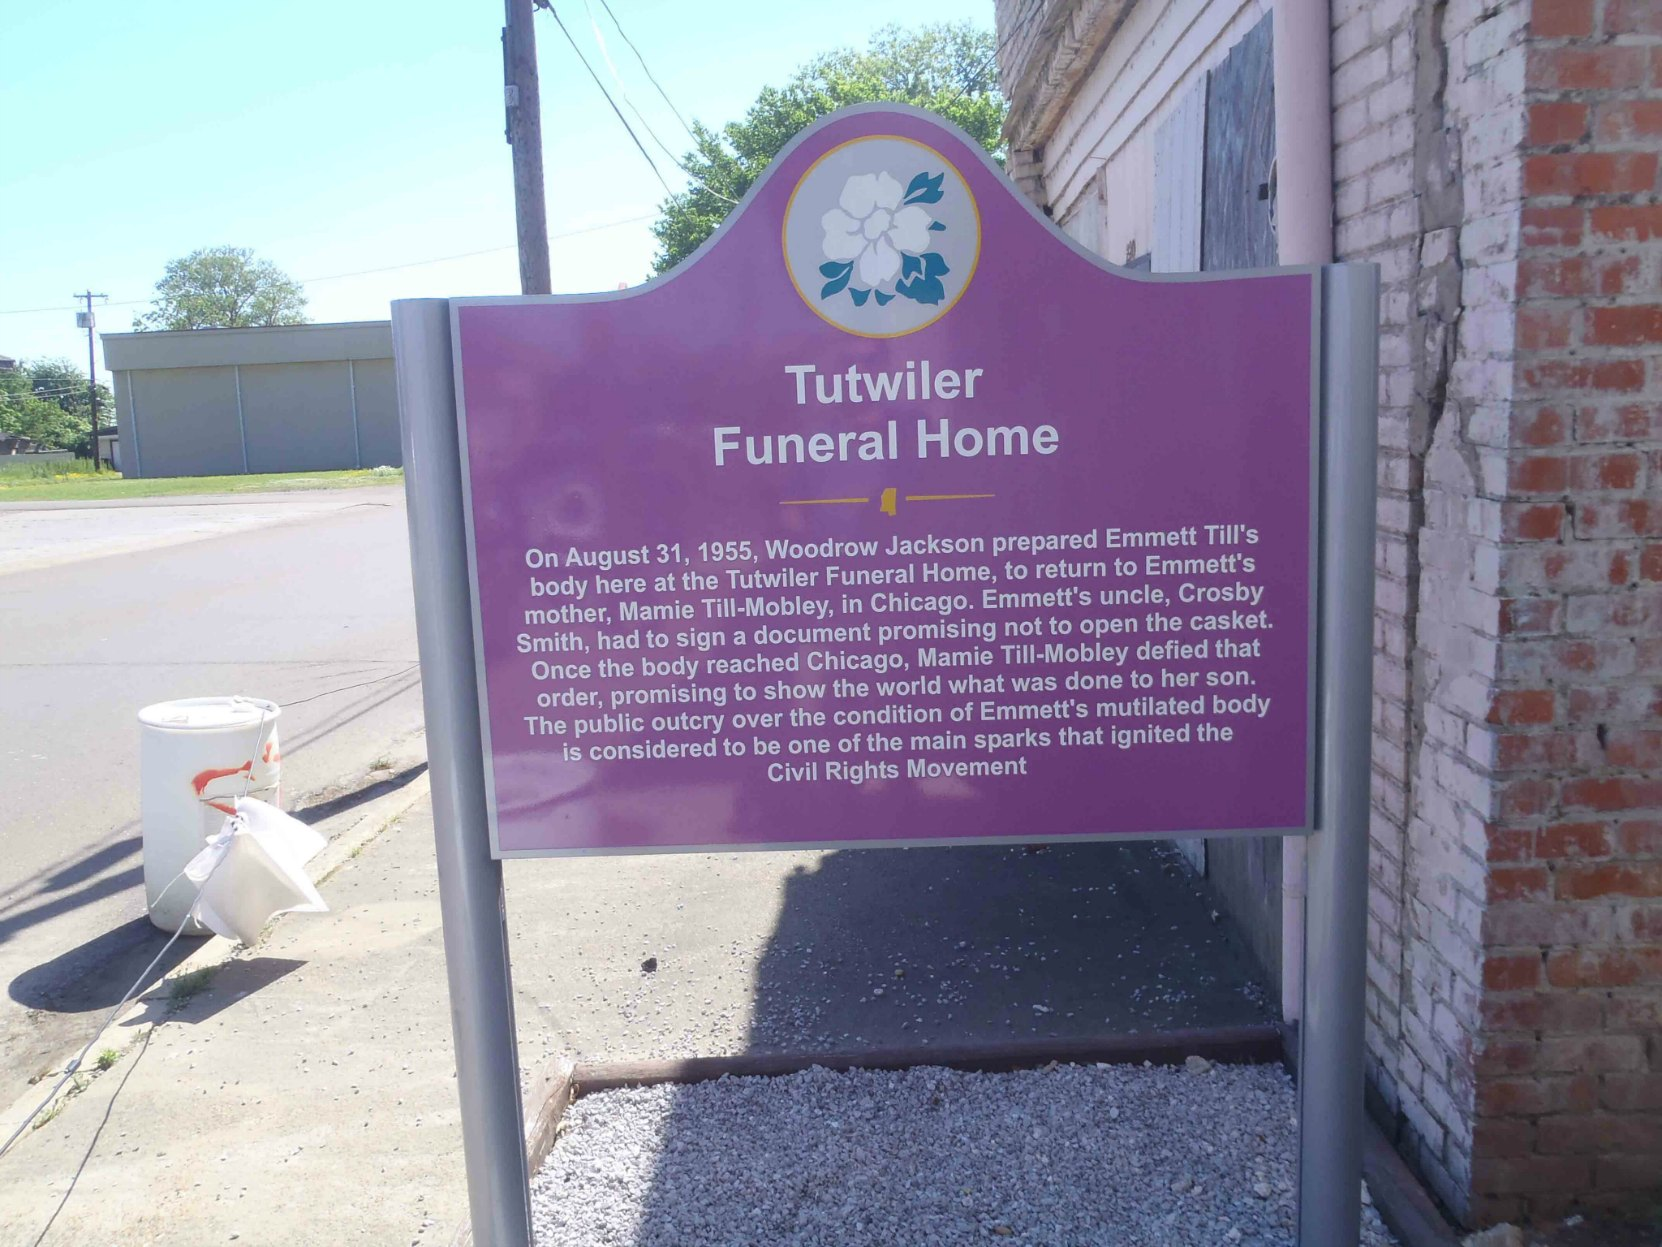 The sign outside the former Tutwiler Funeral Home, where Emmett Till's body was prepared for transportation to Chicago in August 1955.